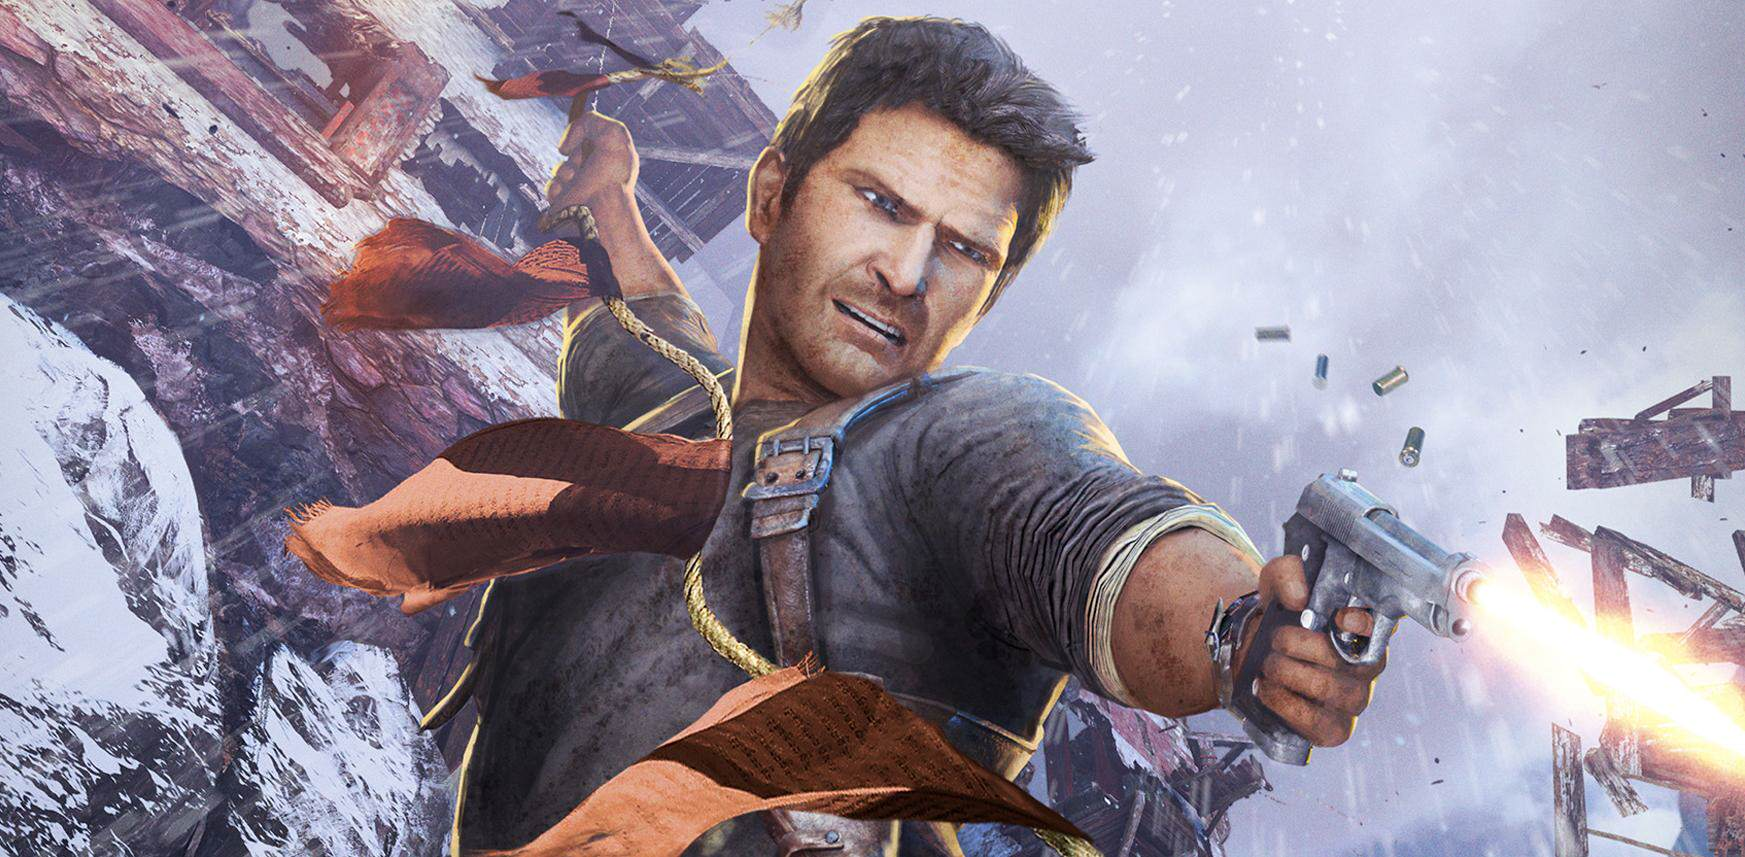 Fan Video Brilliantly Recaps Uncharted Trilogy In Under 10 Minutes Uncharted 2 wallpaper